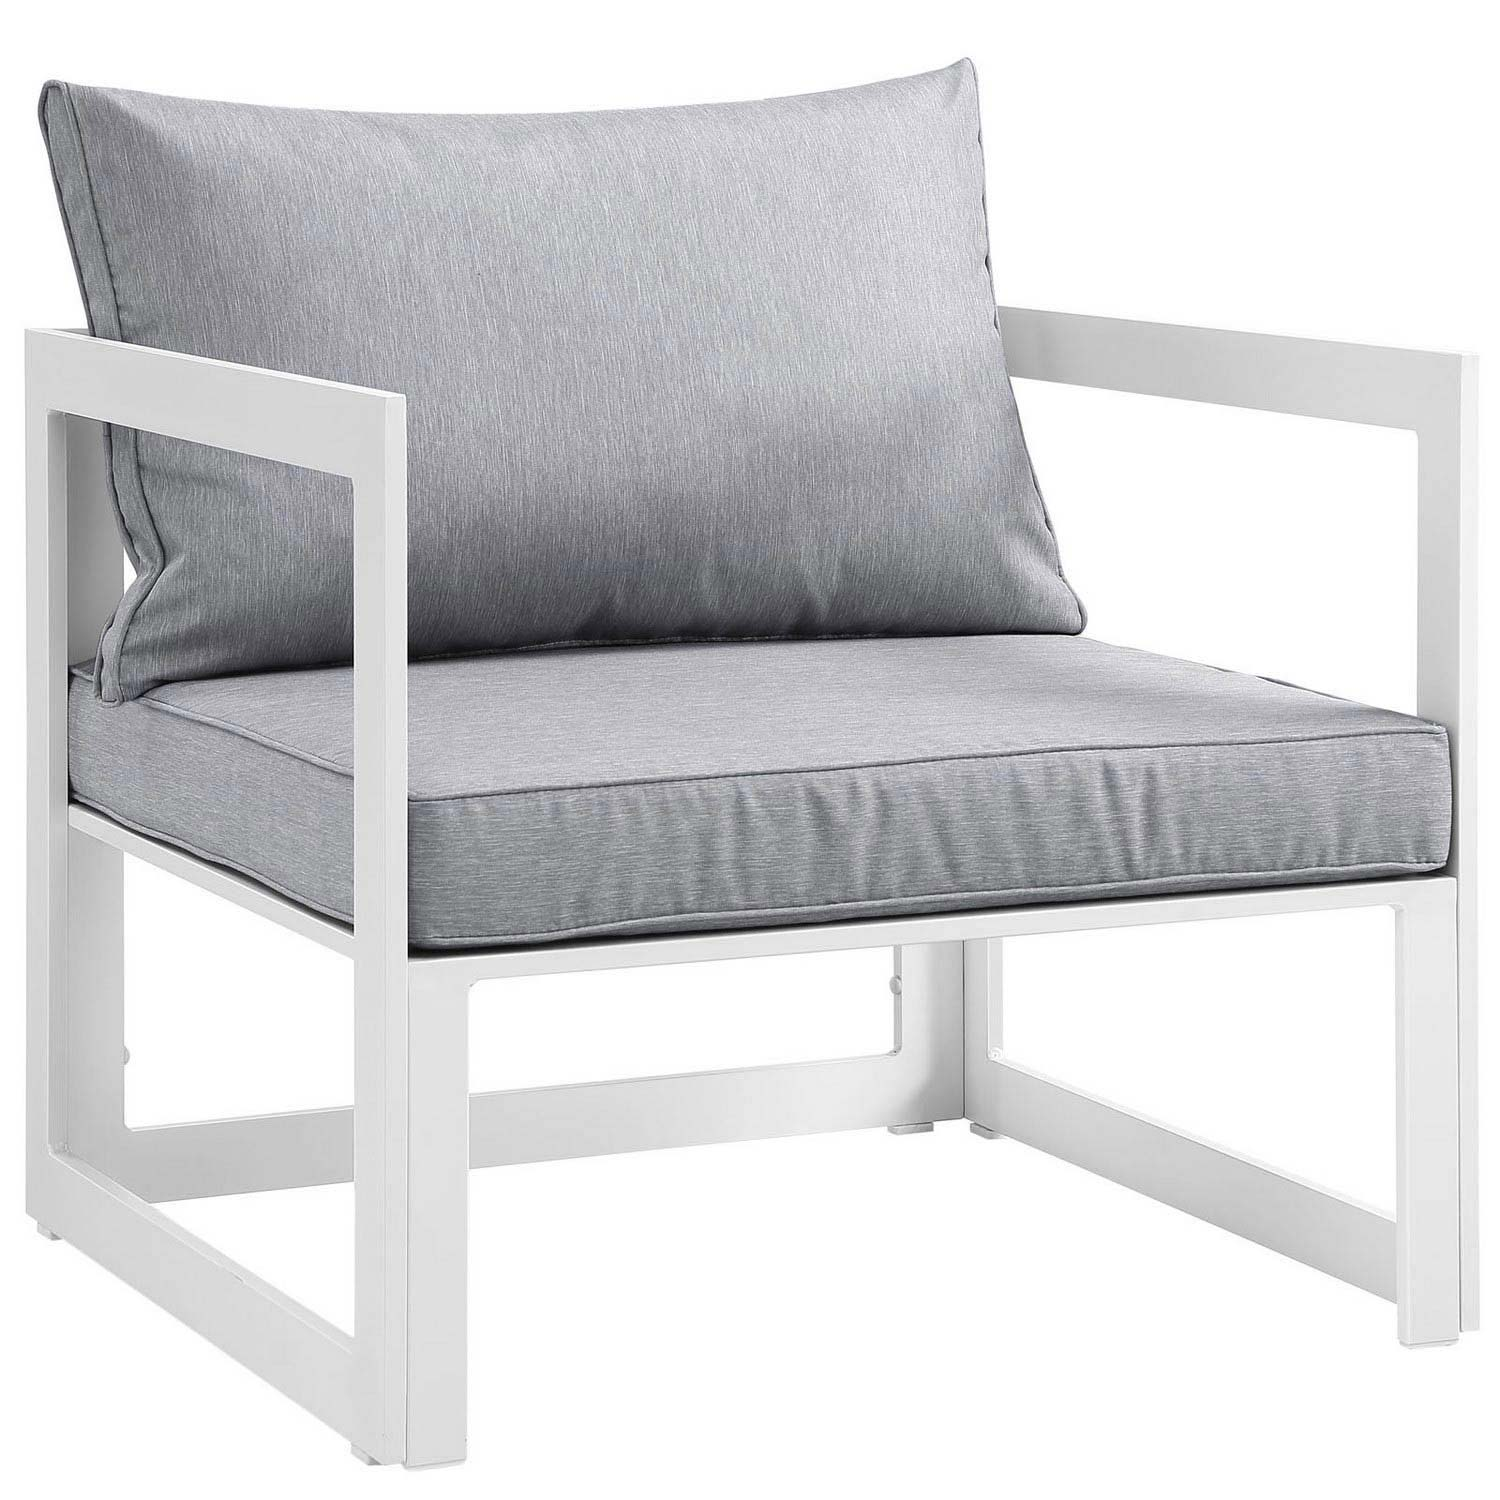 Modway Fortuna Outdoor Patio Armchair - White/Gray